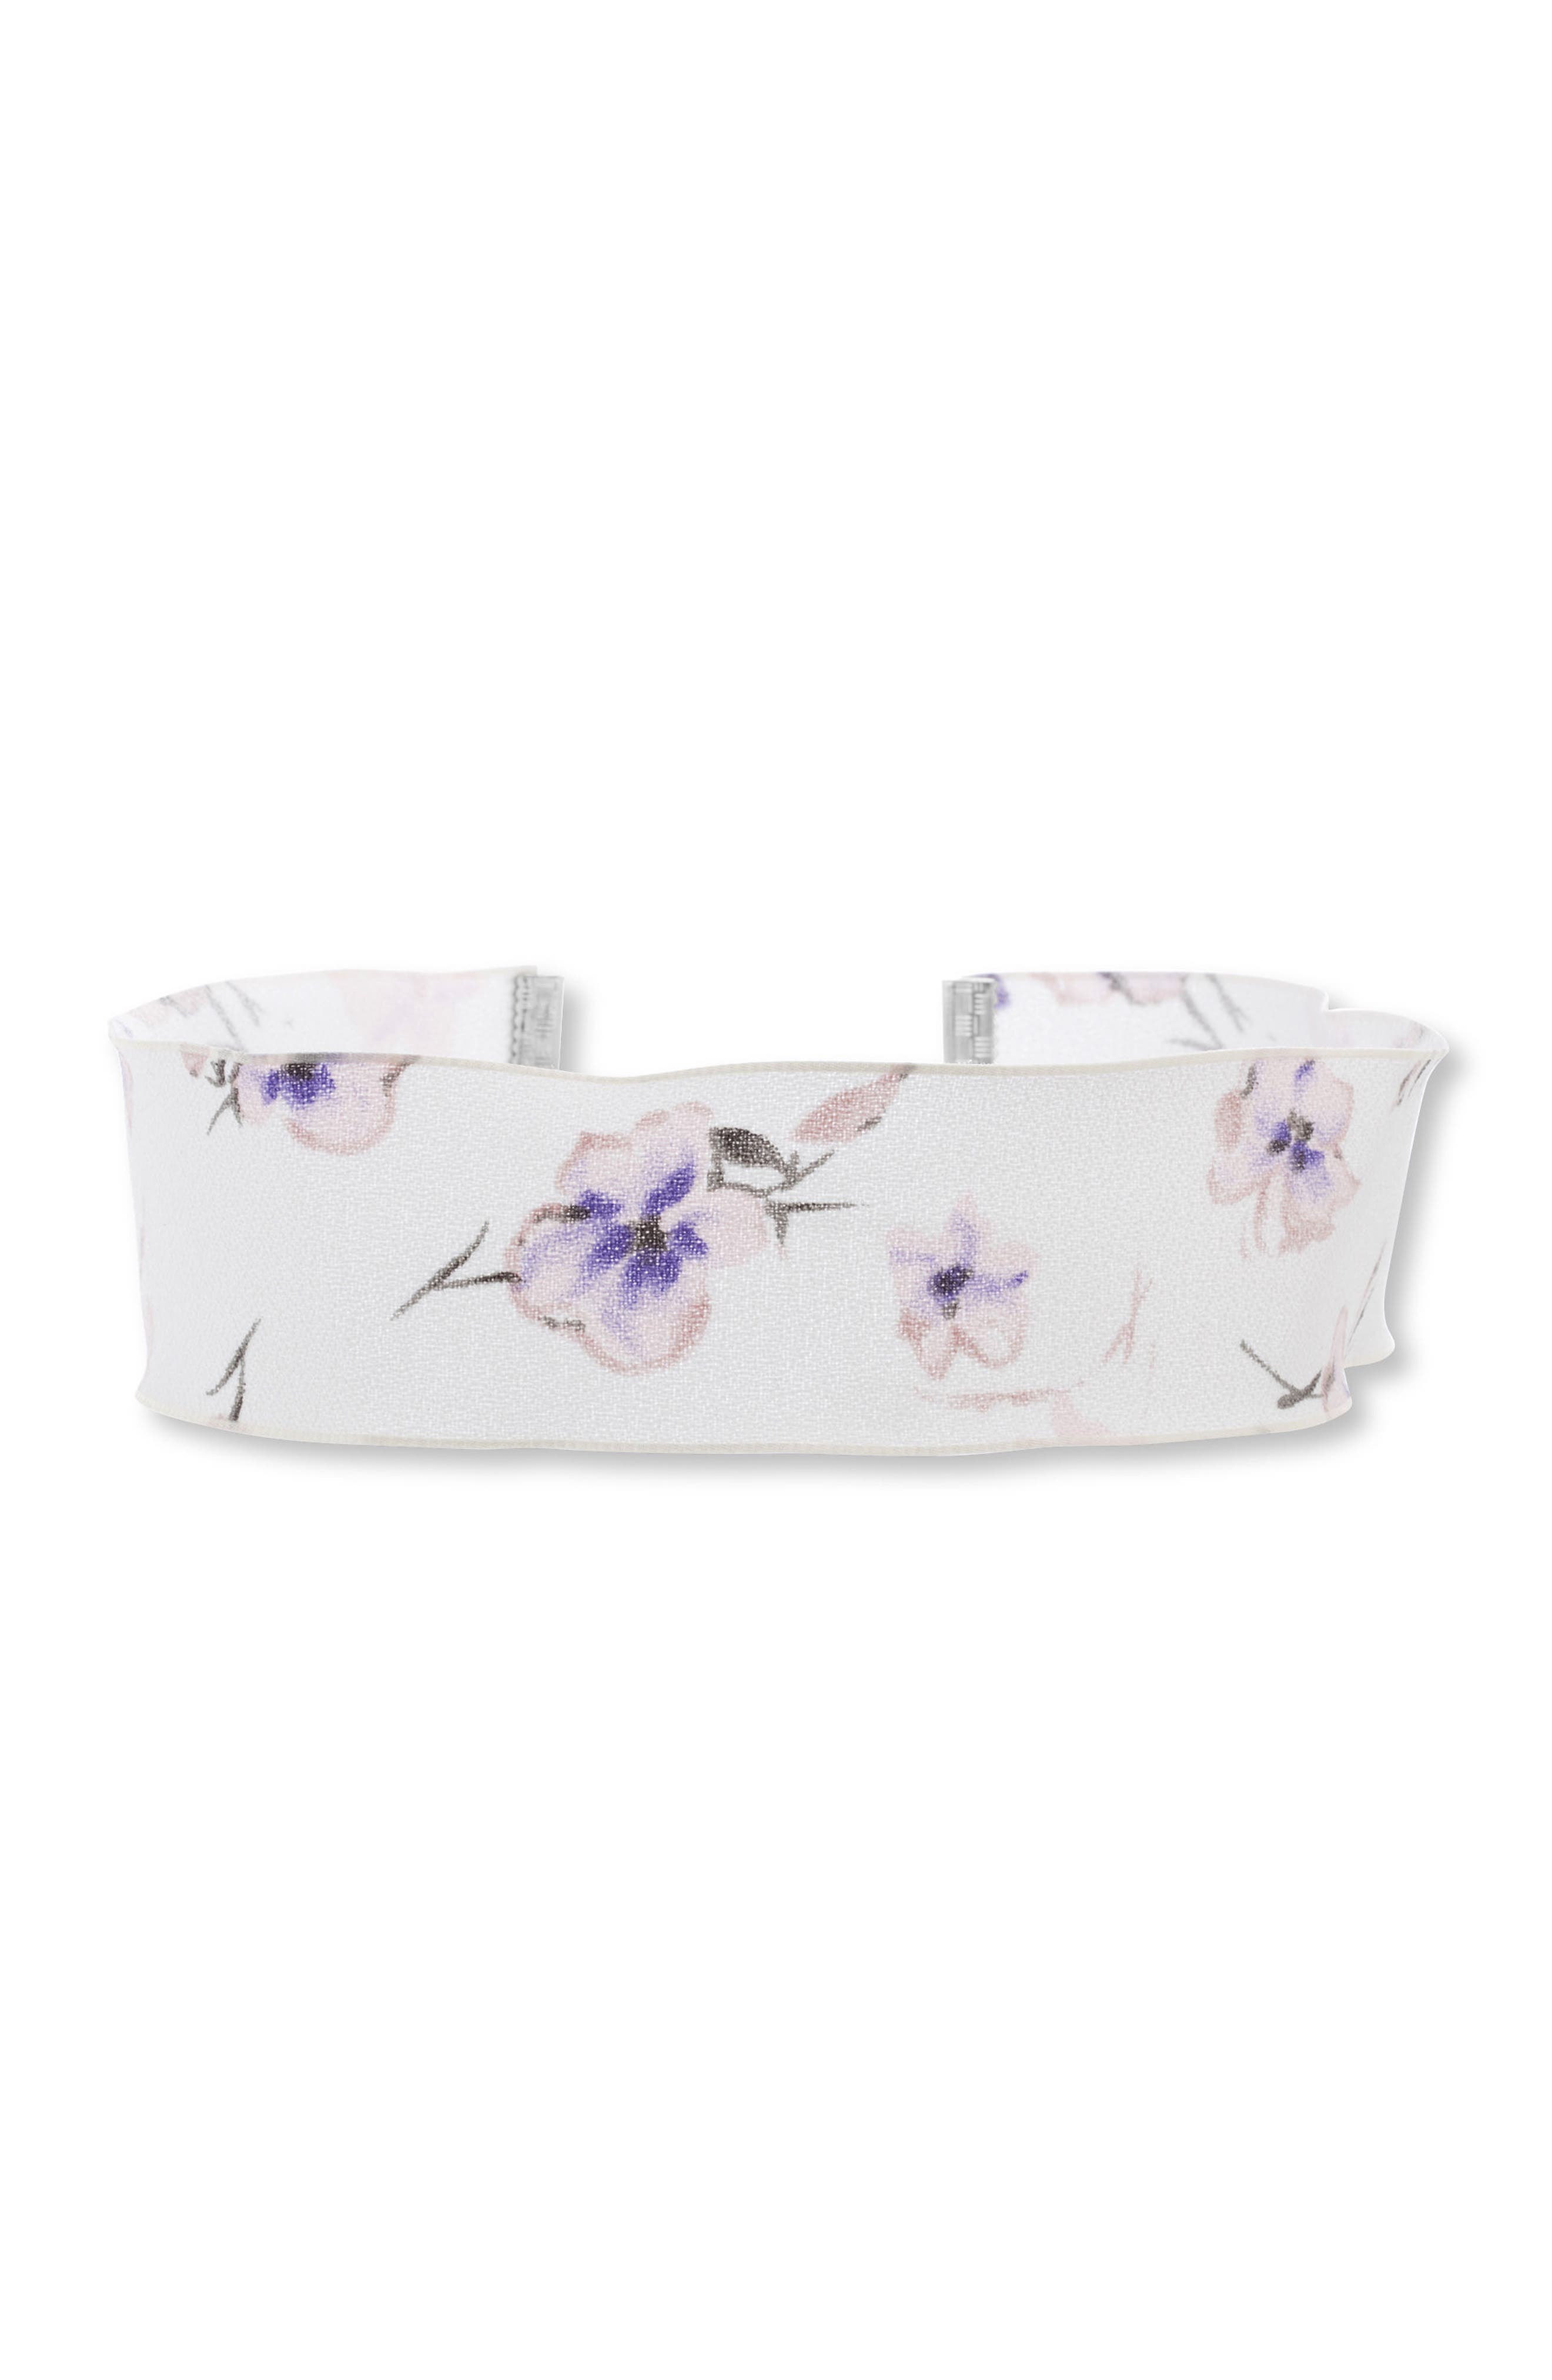 Alternate Image 1 Selected - Steve Madden Floral Choker